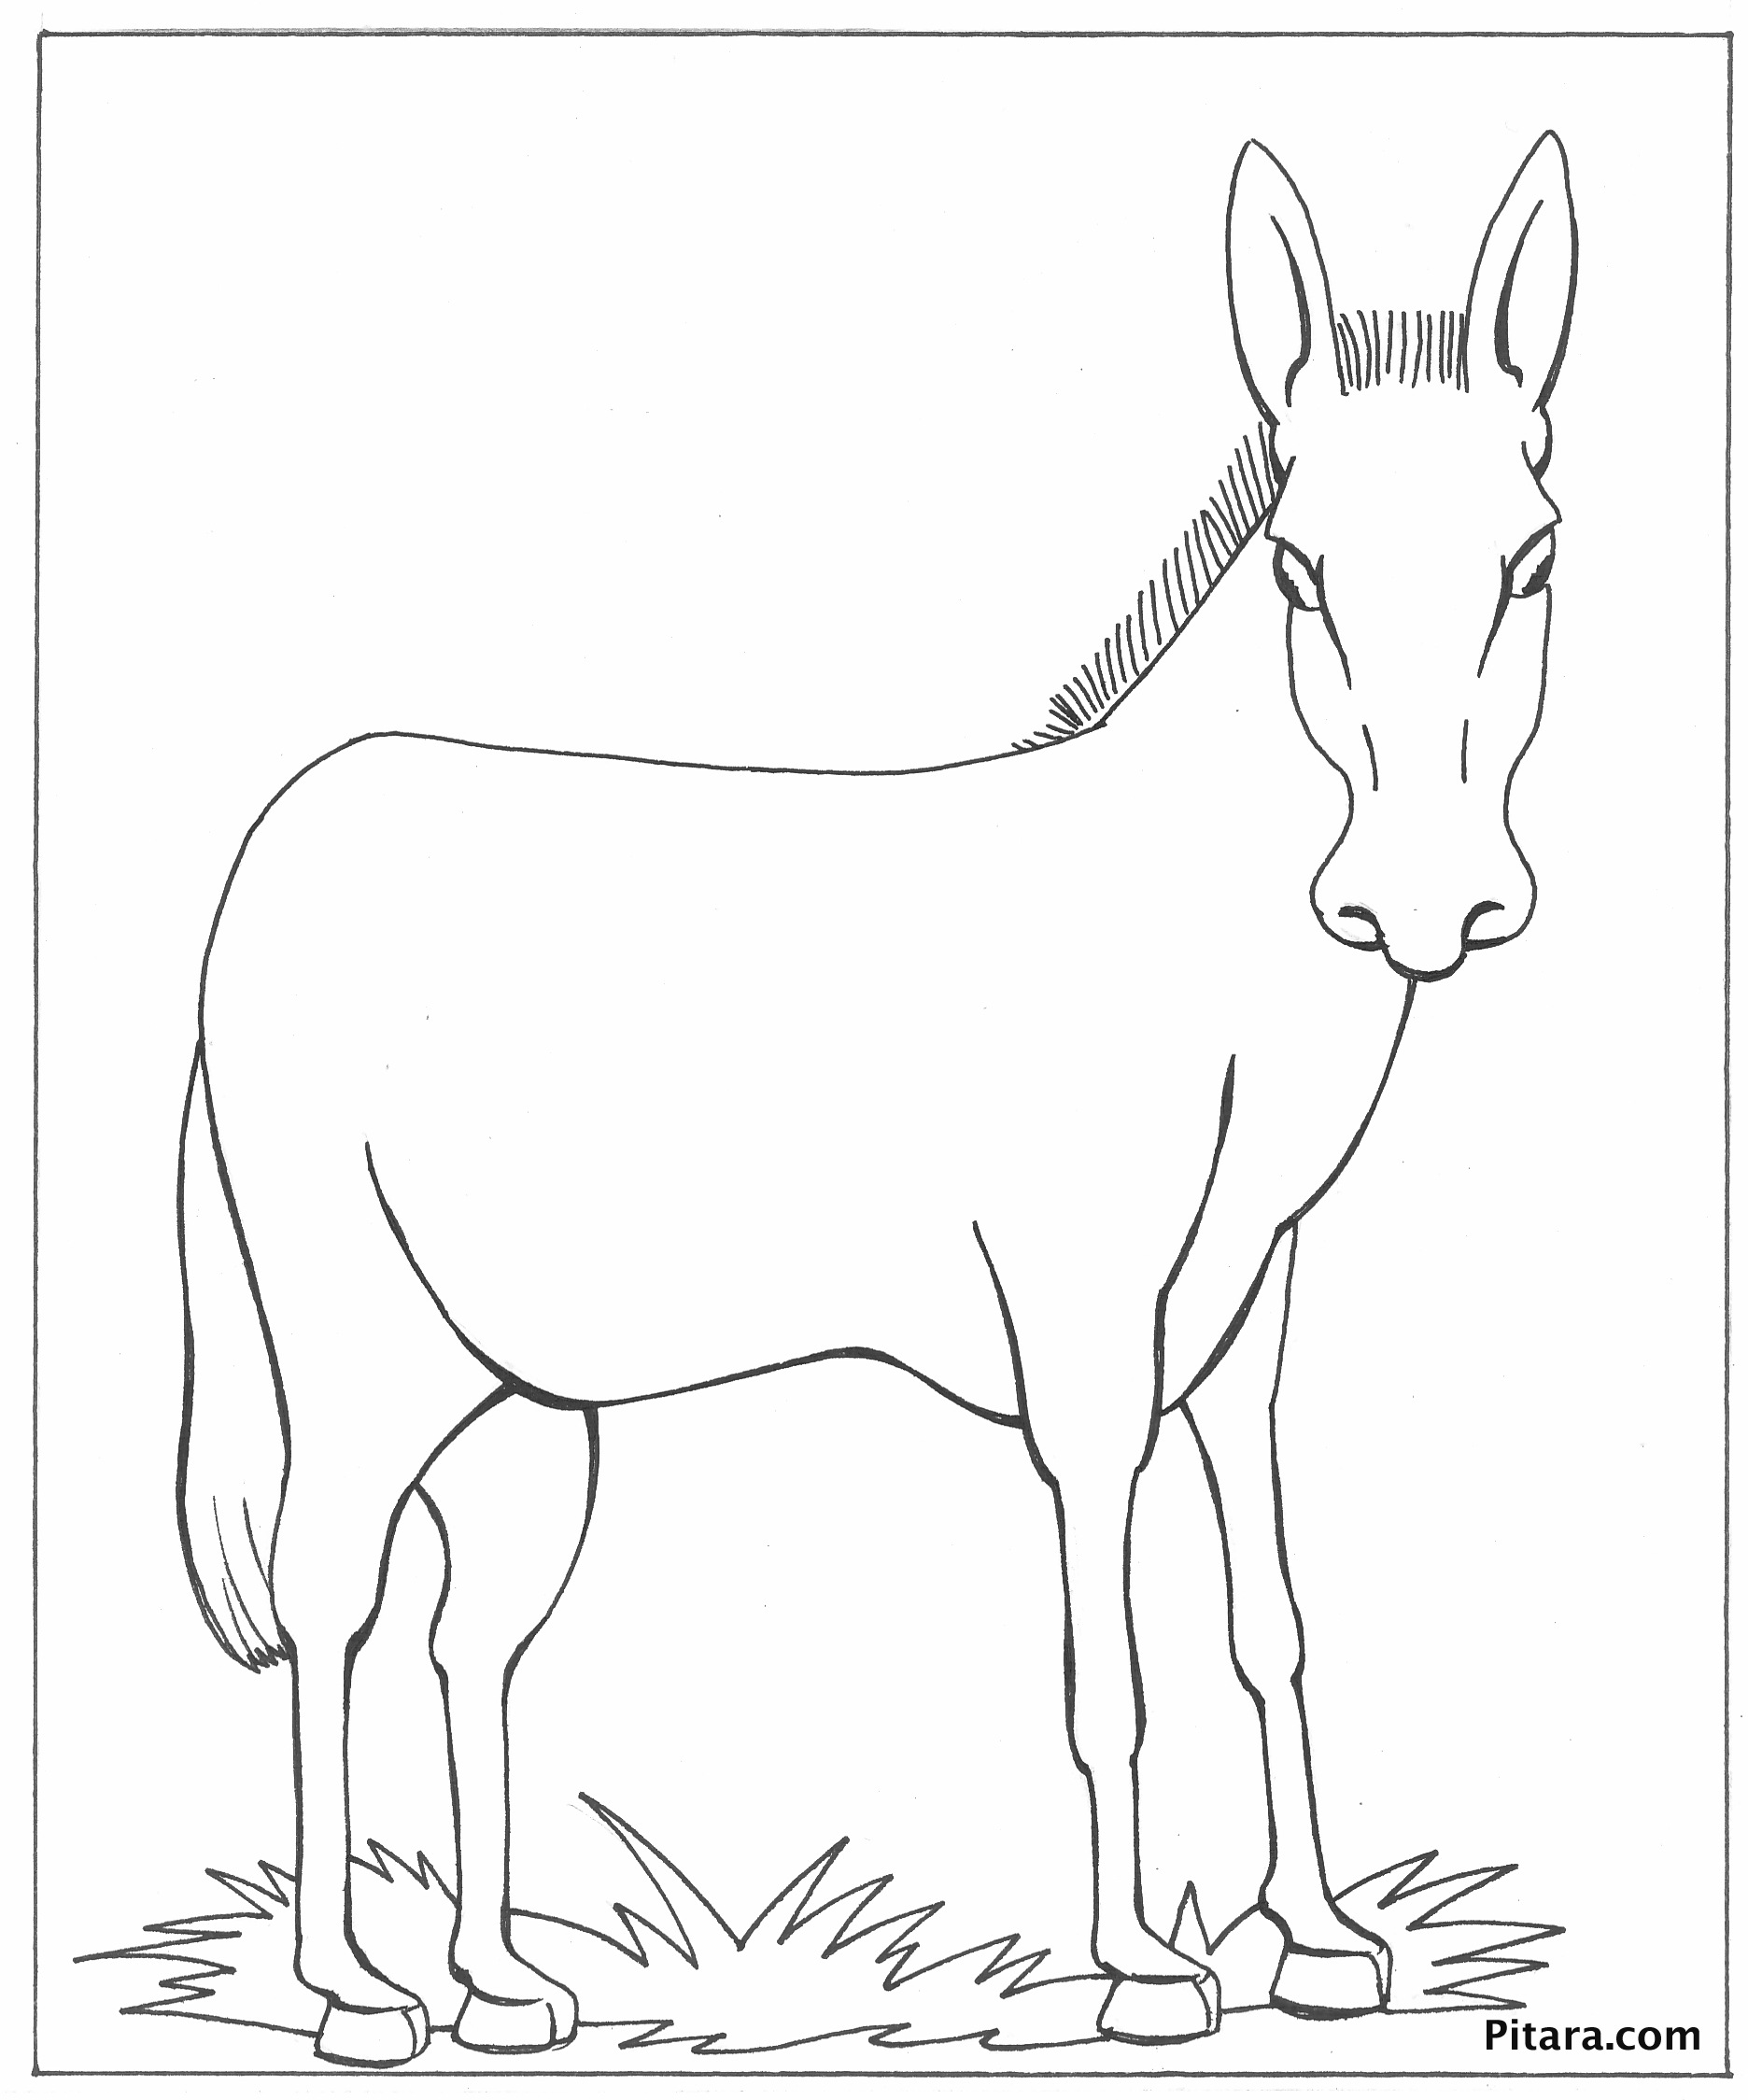 Donkey – Coloring page